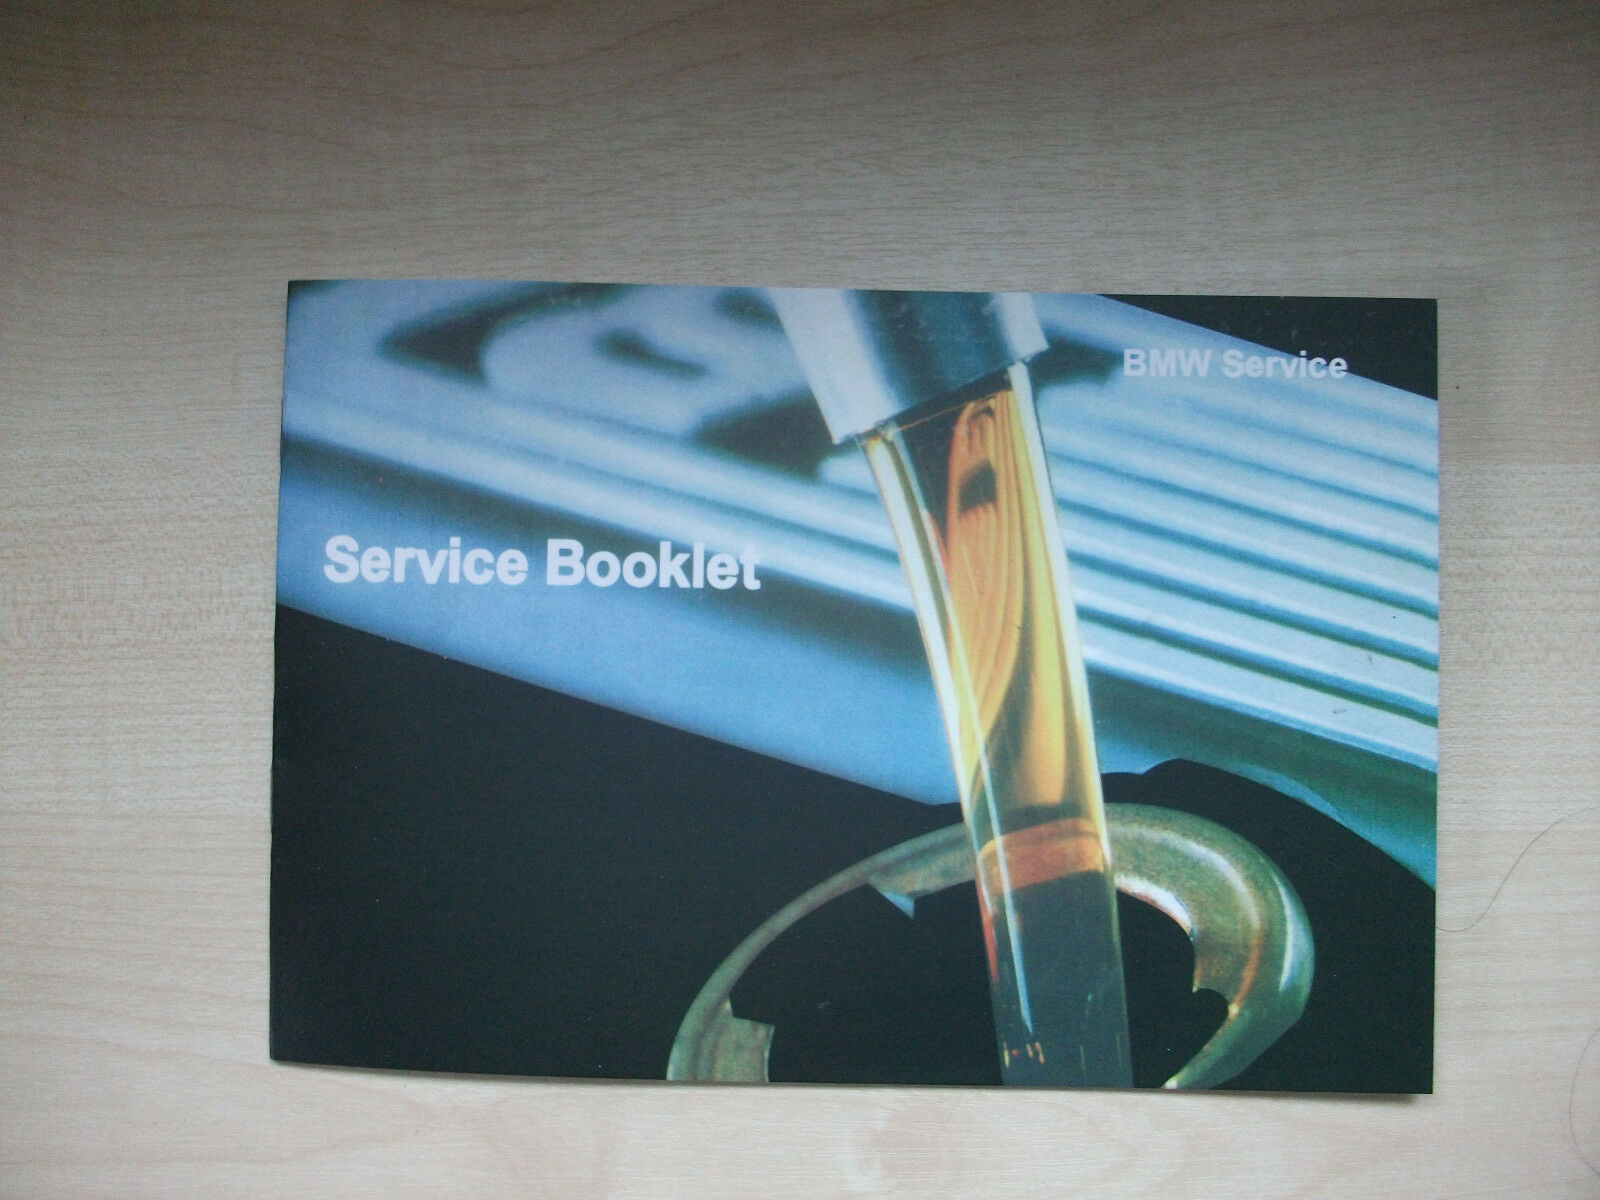 BMW 3 SERIES SERVICE BOOK NEW 318,320 325 330 335 X3, X5, Z4,petrol and diesel